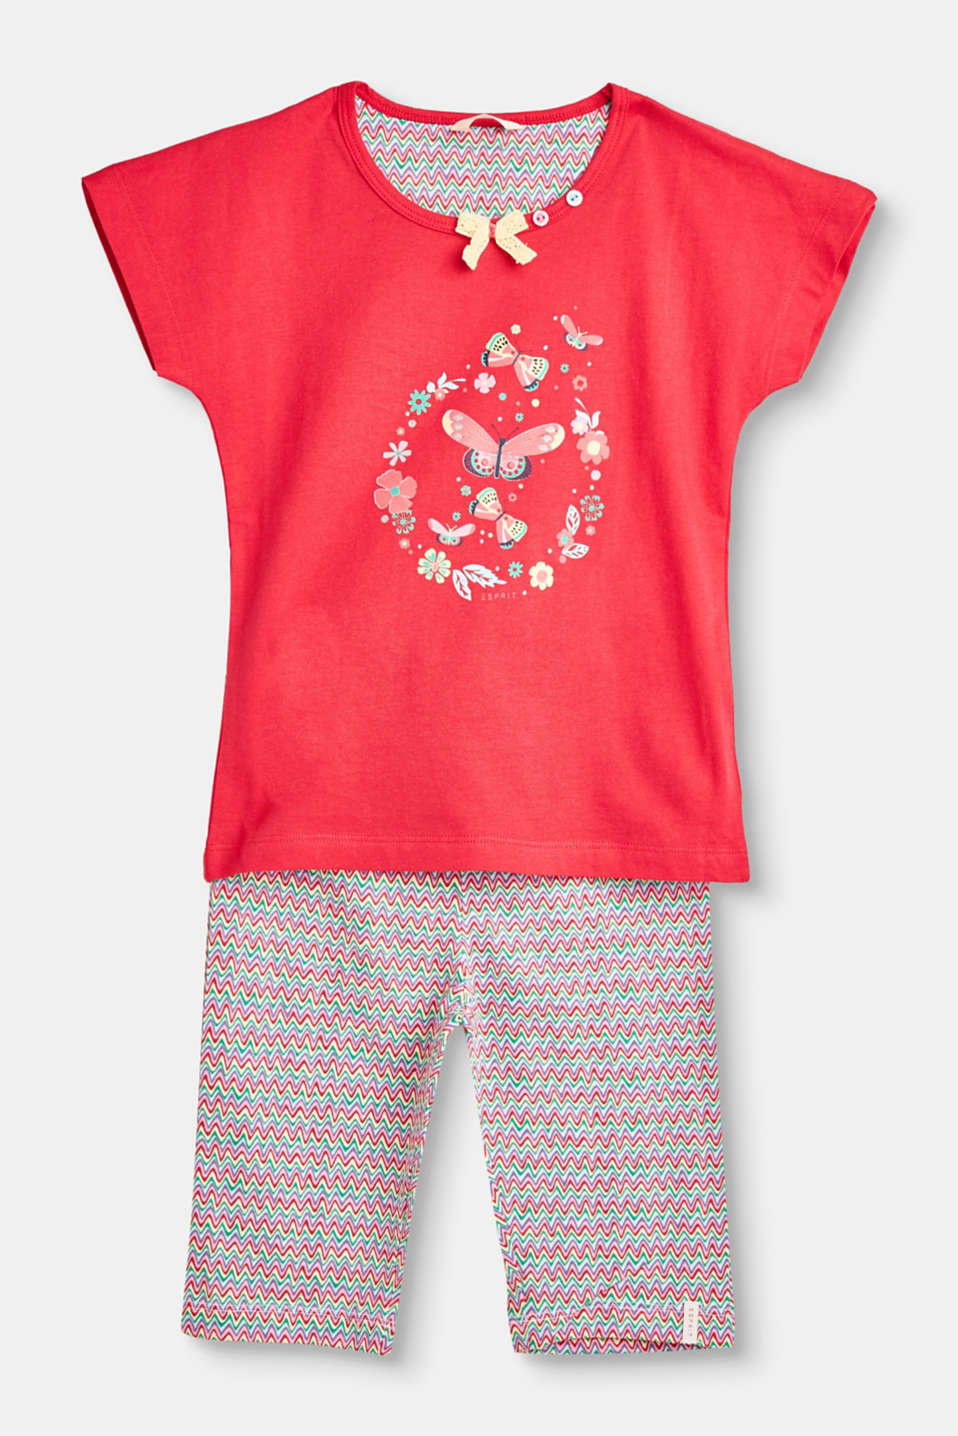 So cute: These soft jersey pyjamas feature a butterfly print on the front and colourful bottoms.